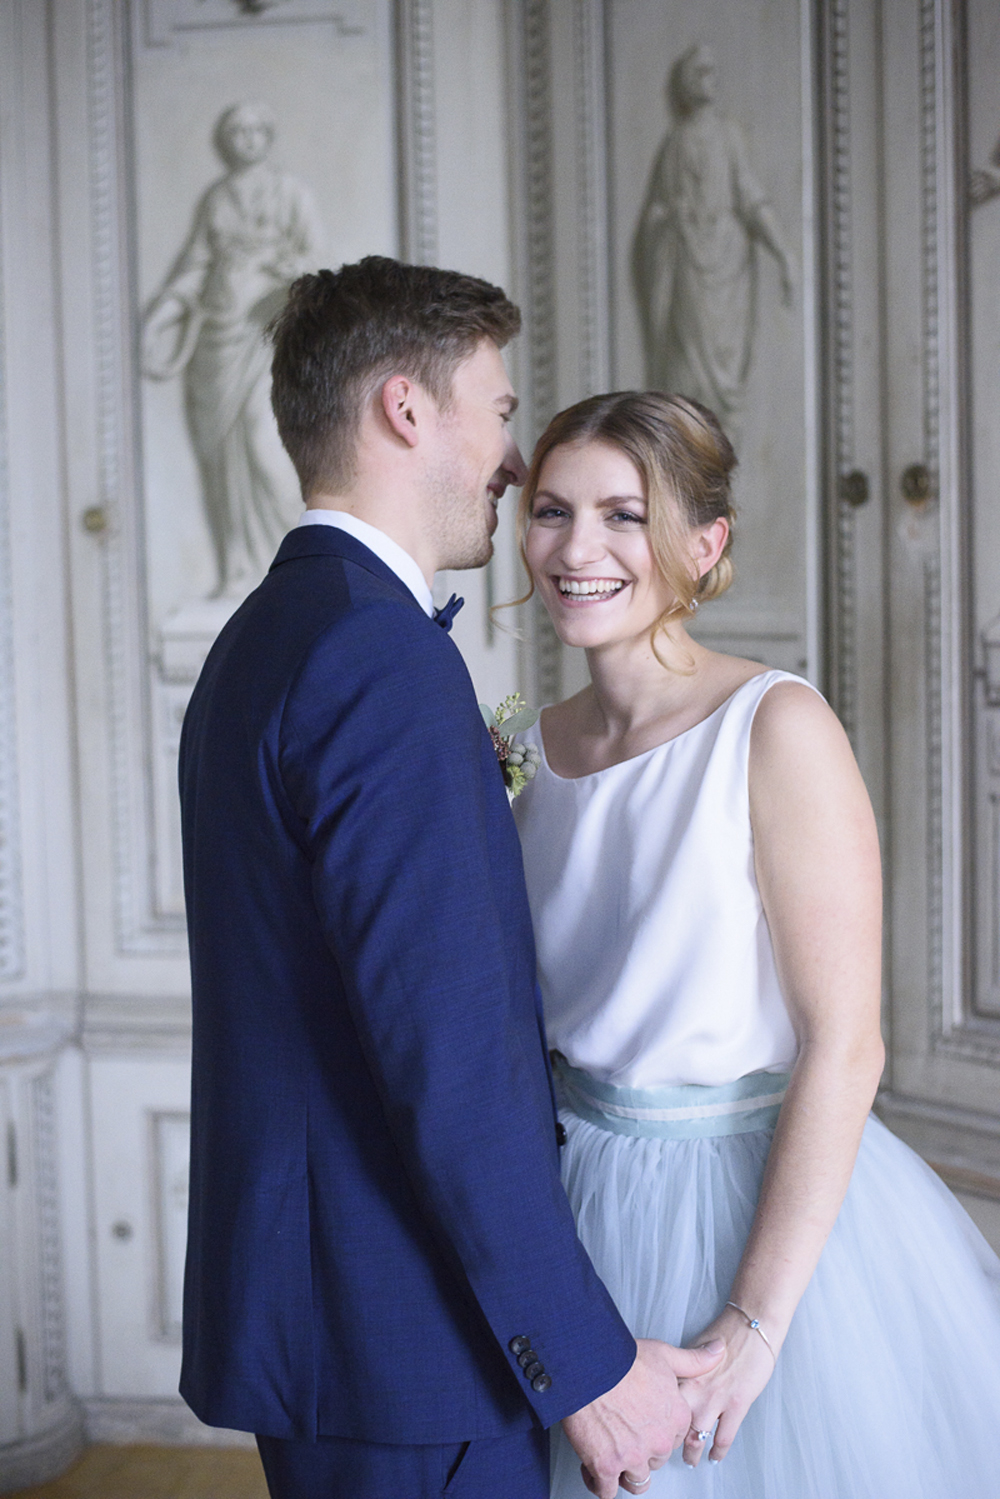 Bride and groom wedding inspiration at Schloss Laudon Vienna Austria by Barbara Wenz Photography